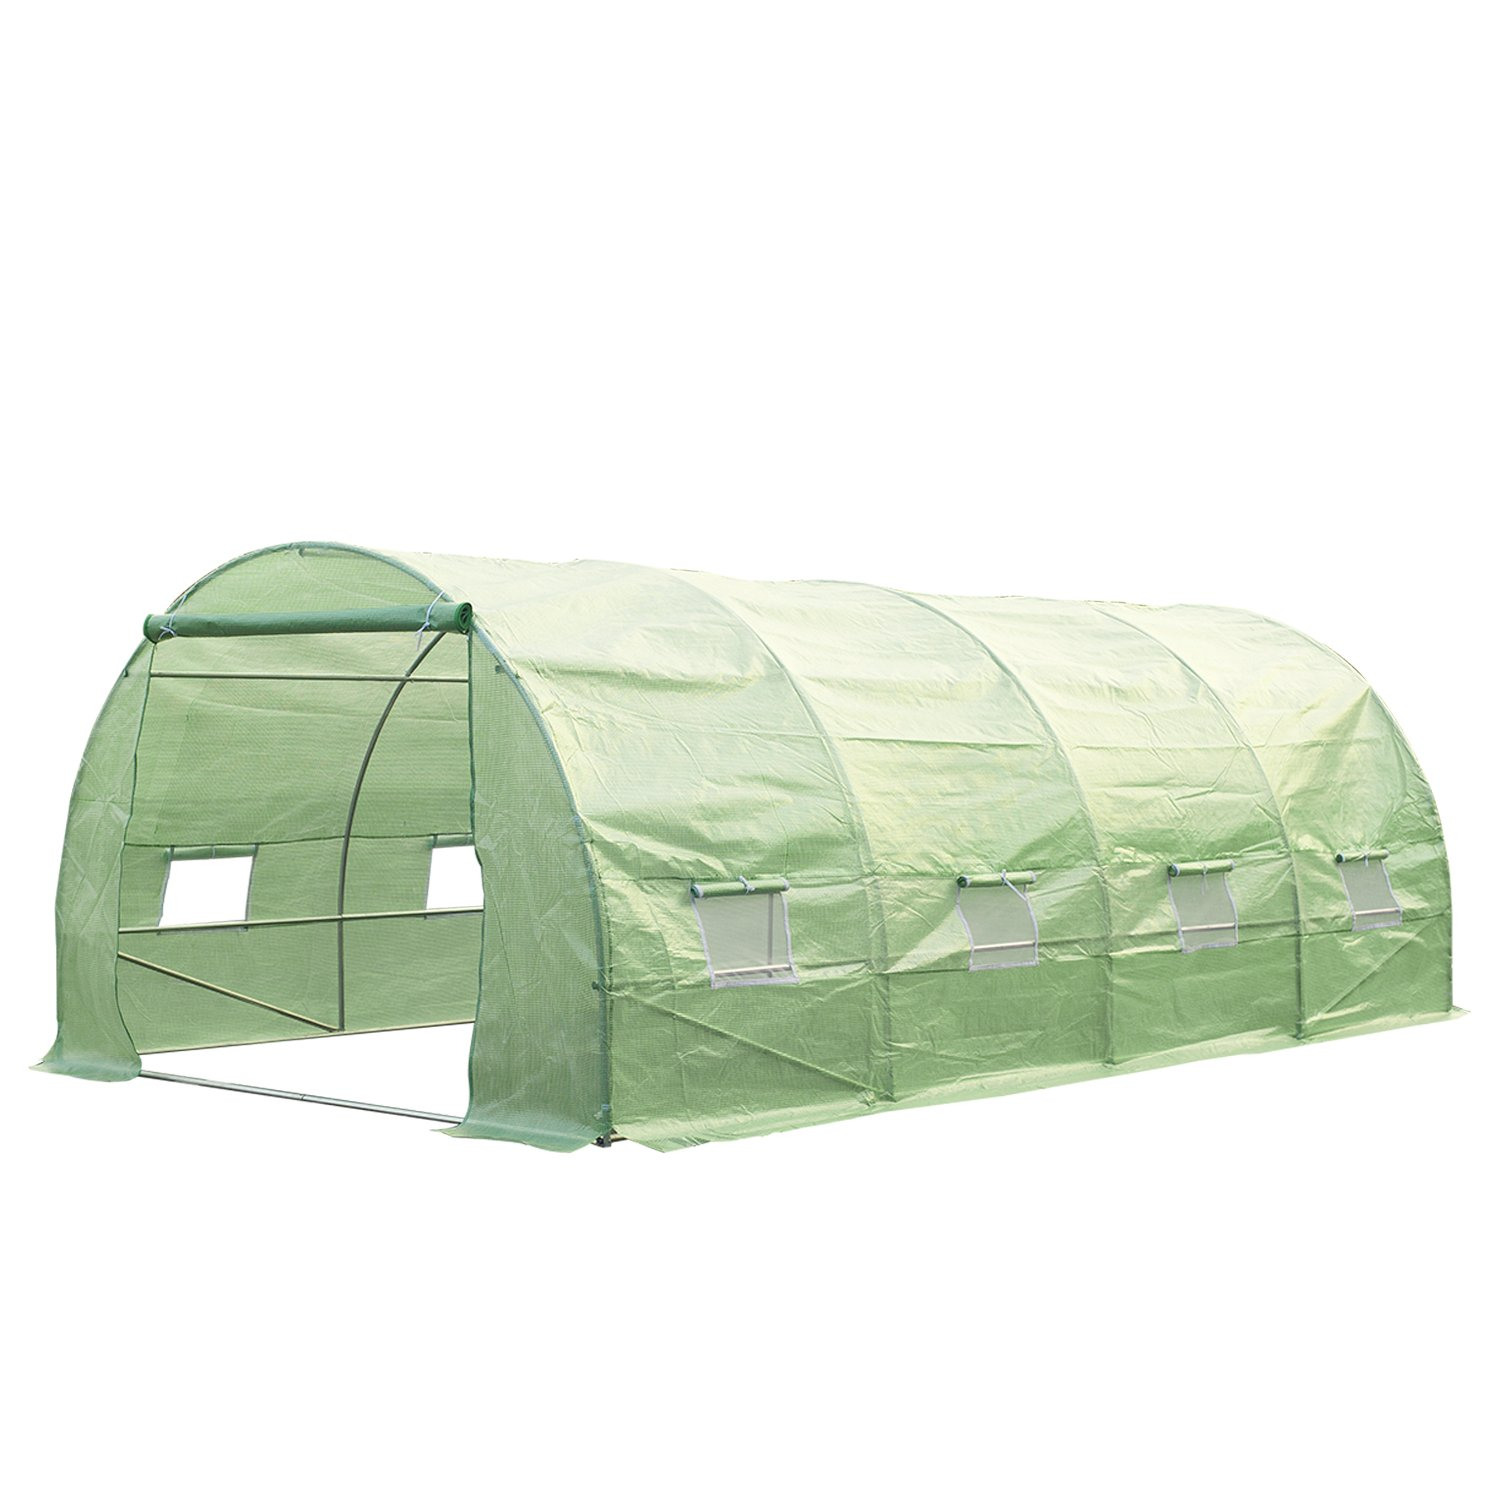 HOMCOM Outsunny 6 x 3 x 2m Walk-in Outdoor Garden Greenhouse Polytunnel with Door and Windows Sold By MHSTAR